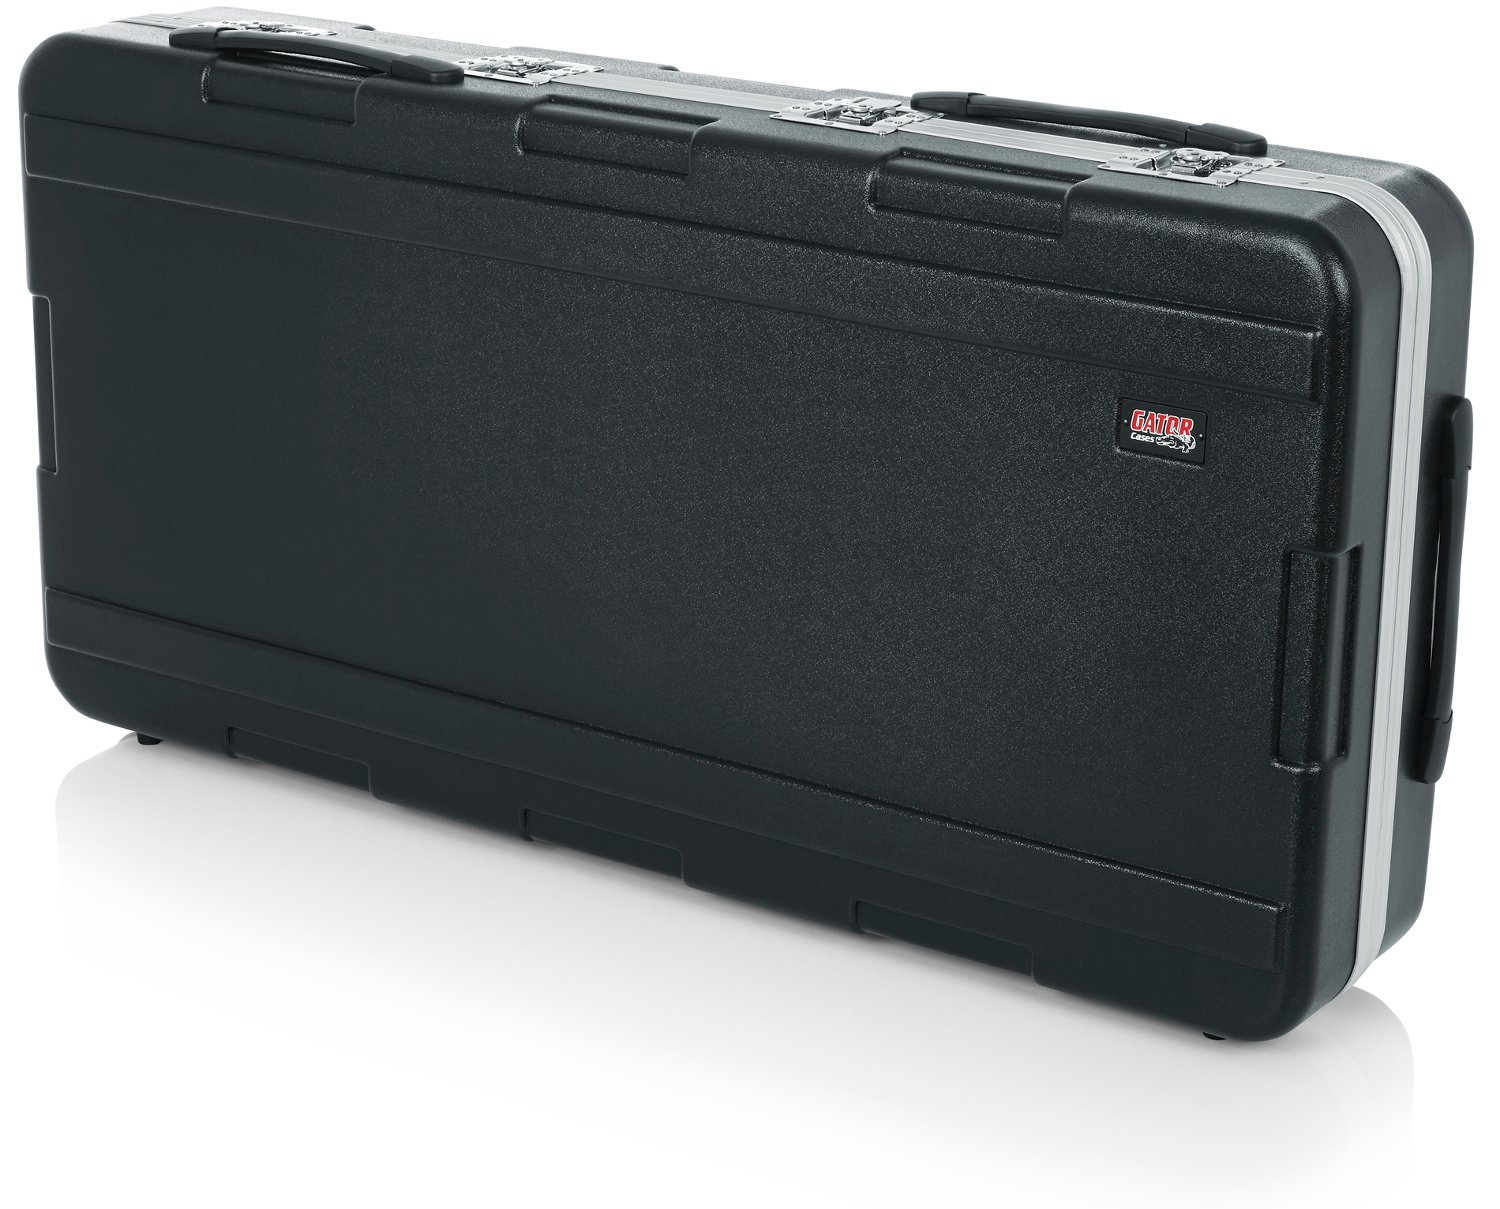 "Gator Cases G-MIX 22X46 22"" x 46"" ATA Mixer Case (with Wheels) GMIX-22X46"